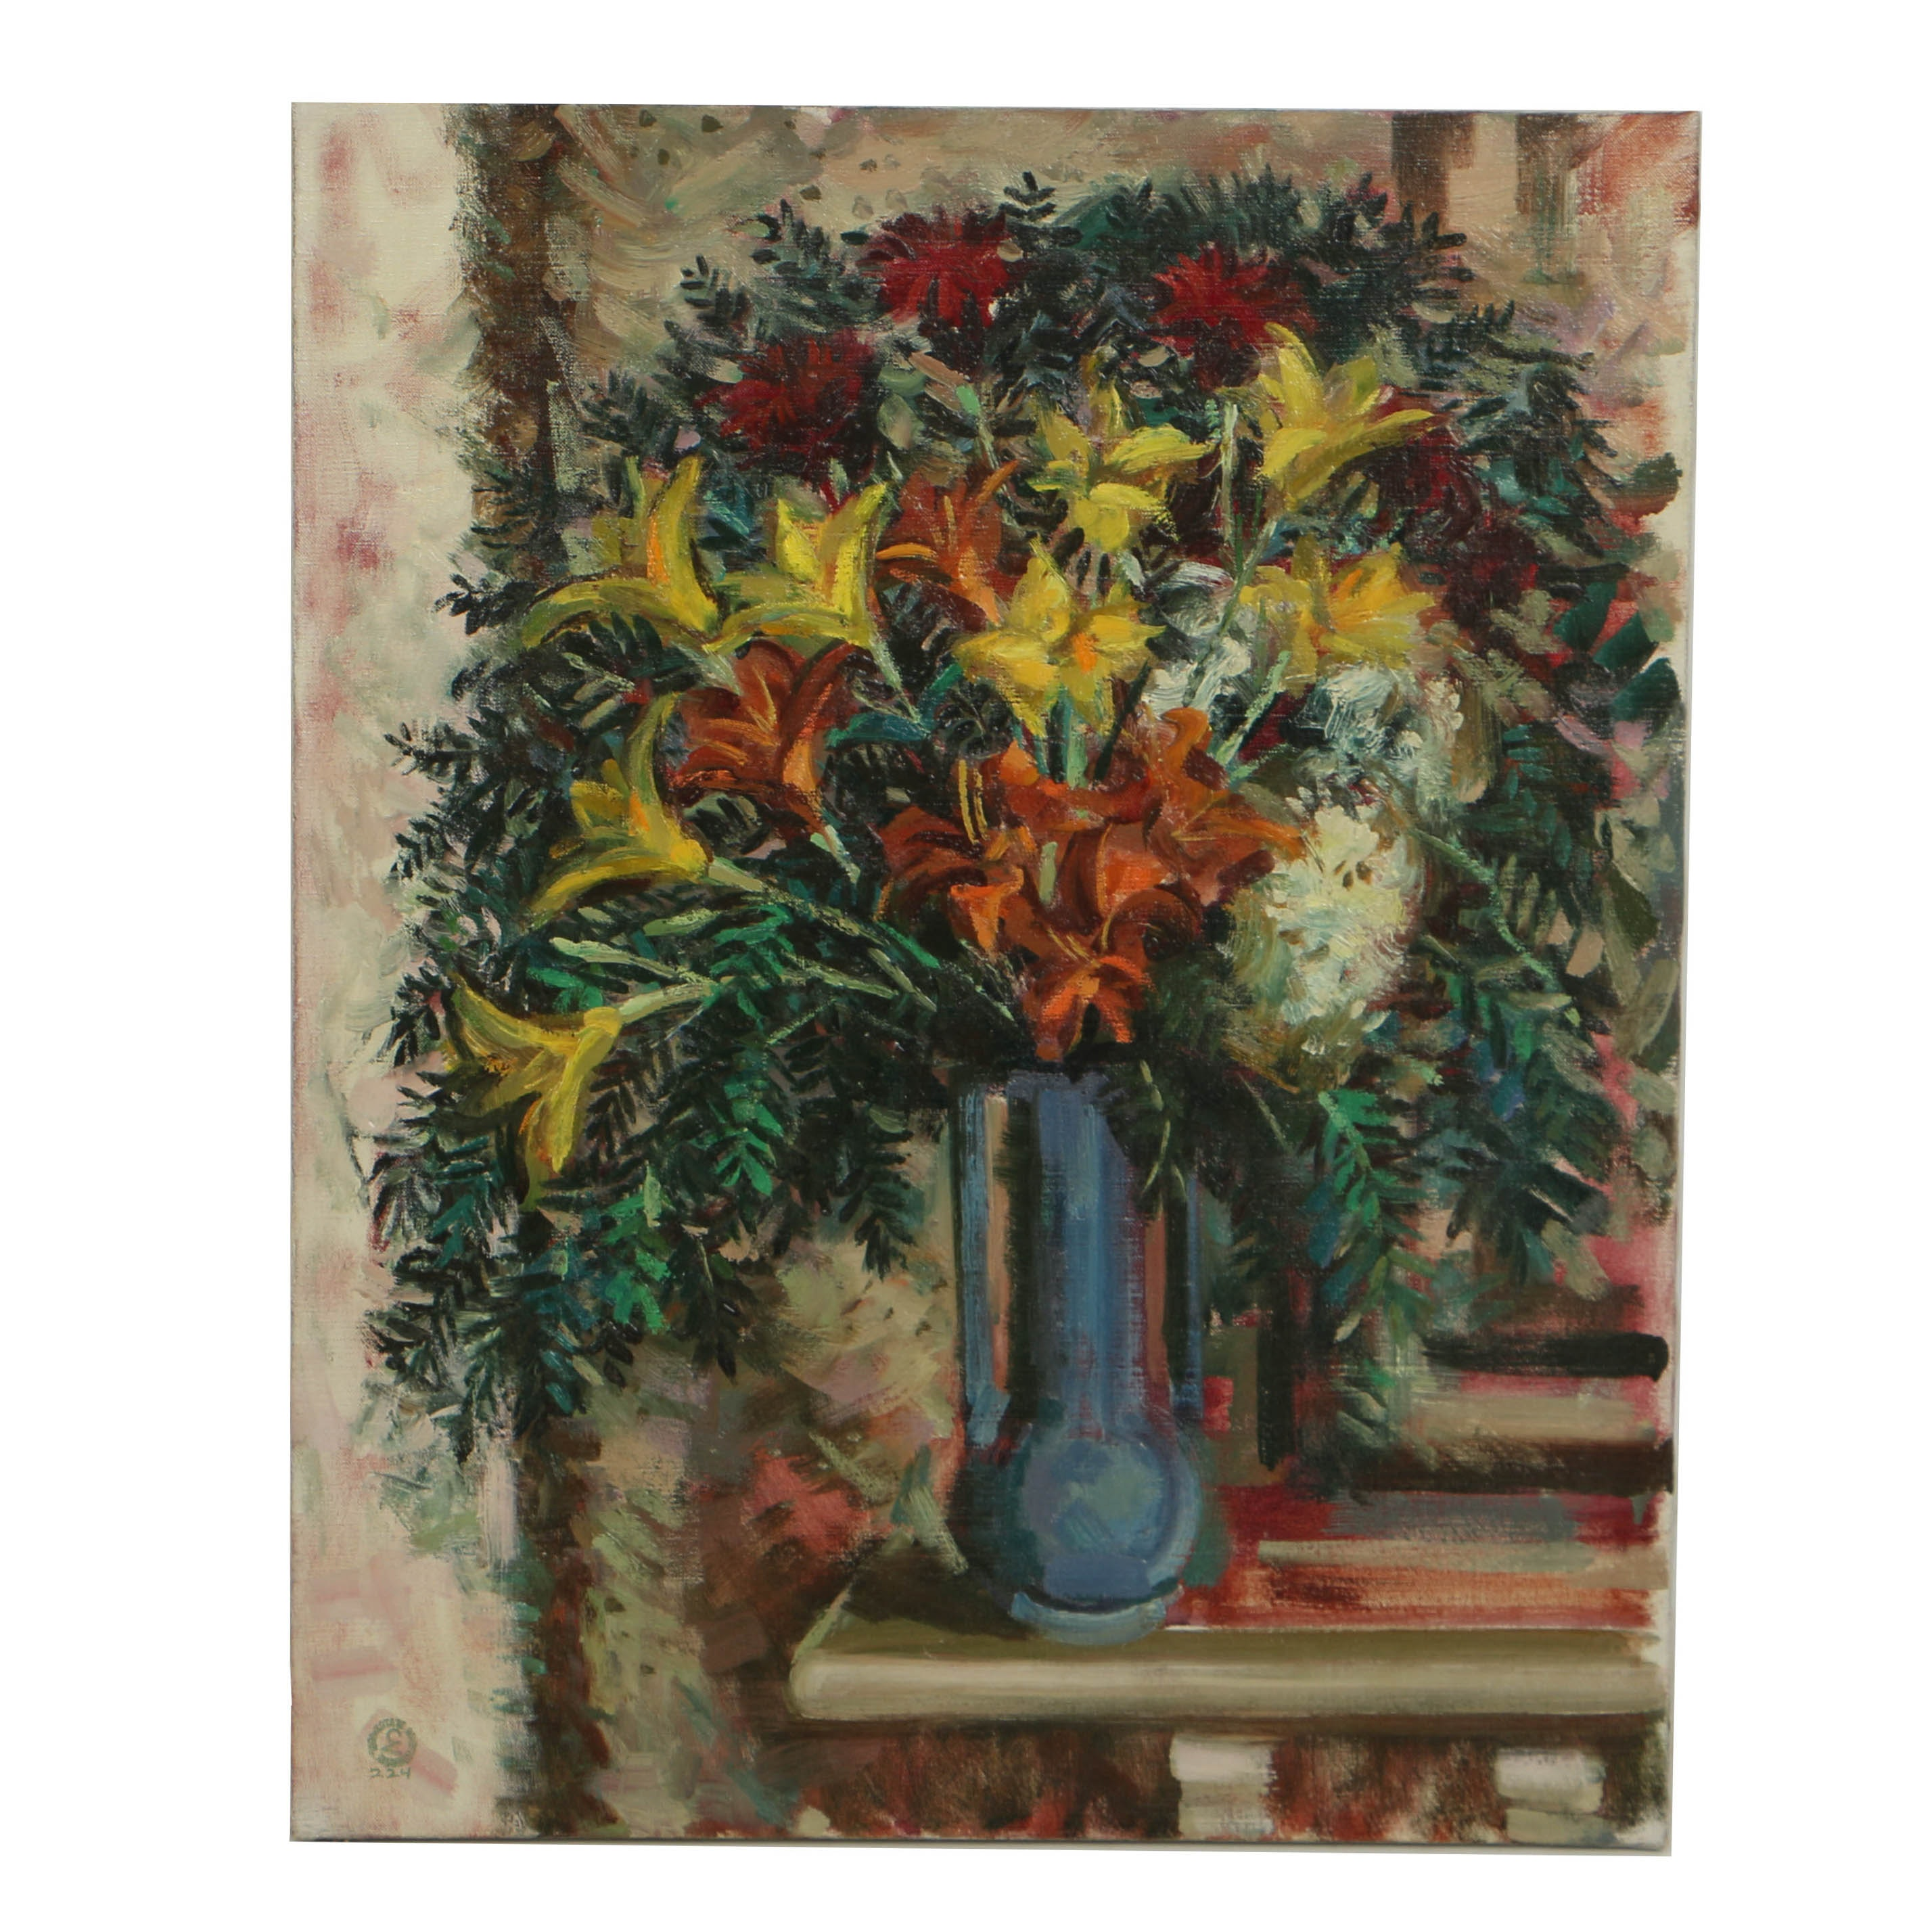 Carl Zimmerman Oil Painting on Canvas of Floral Still Life